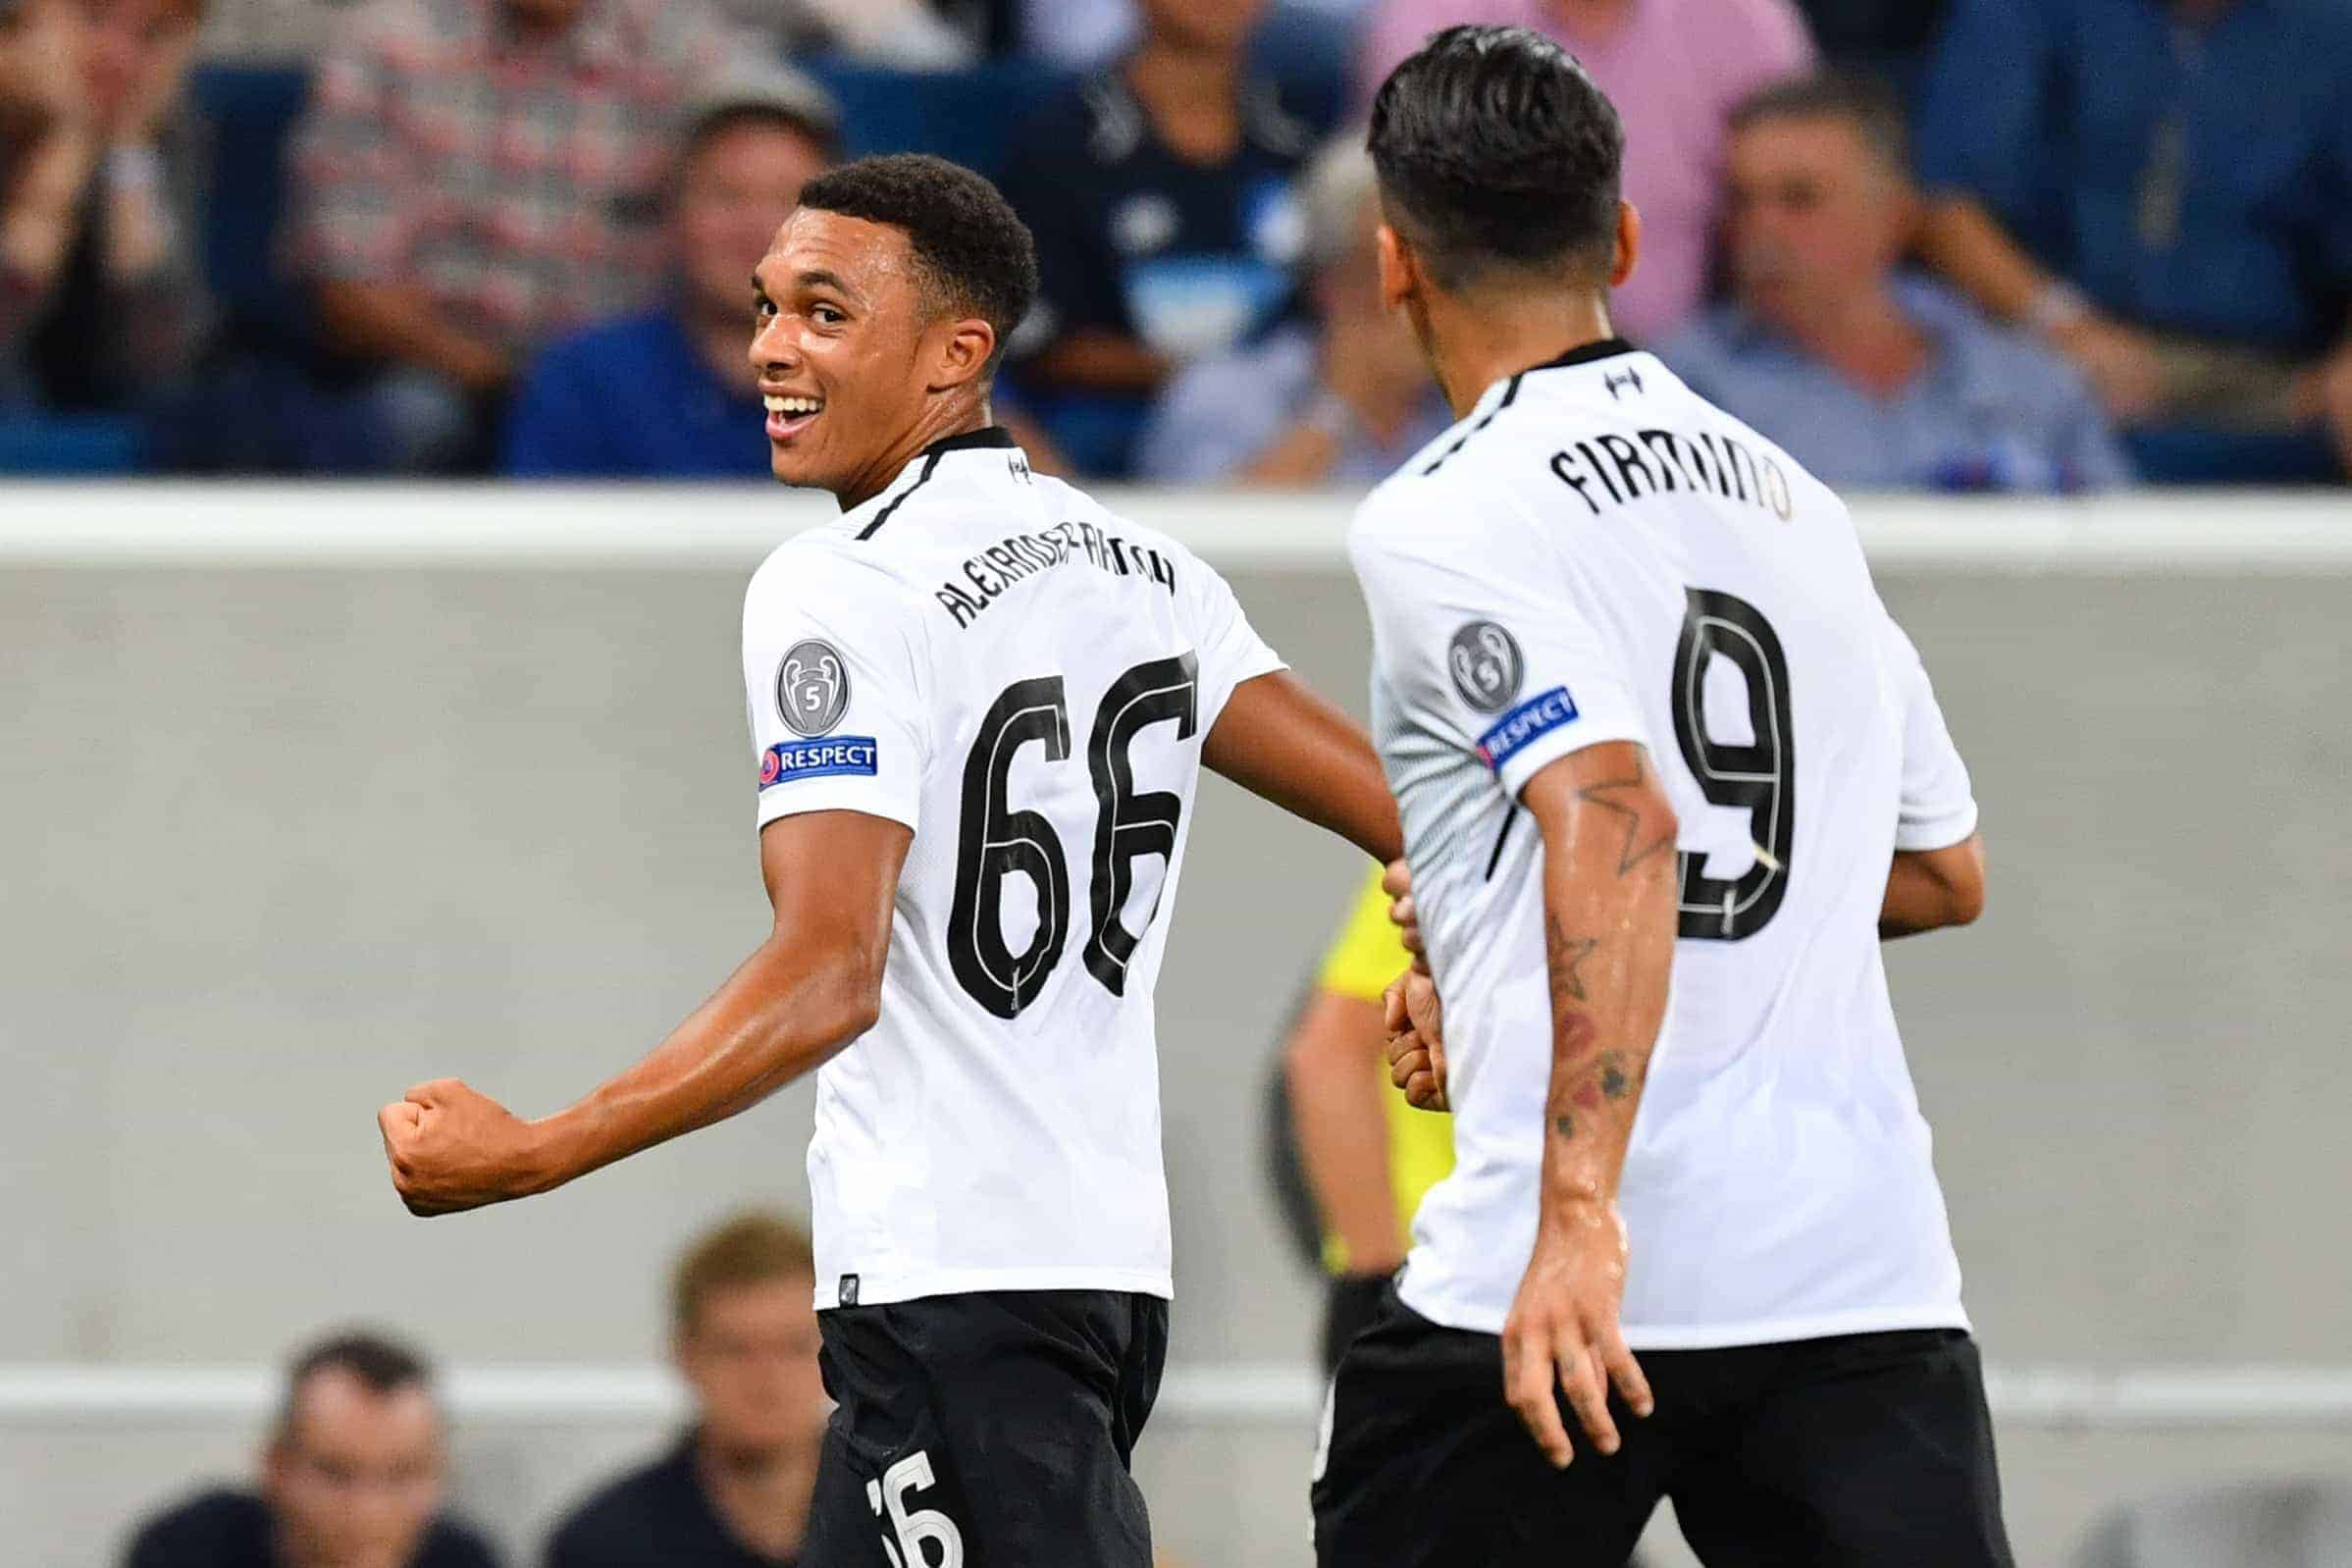 Liverpool's Trent Alexander-Arnold (L) celebrates his 0-1 goal together with his team mate Roberto Firmino during the Champions League's qualifer match between 1899 Hoffenheim and FC Liverpool in the Rhein-Neckar-Arena in Sinsheim, Germany, 15 August 2017. Photo: Uwe Anspach/dpa